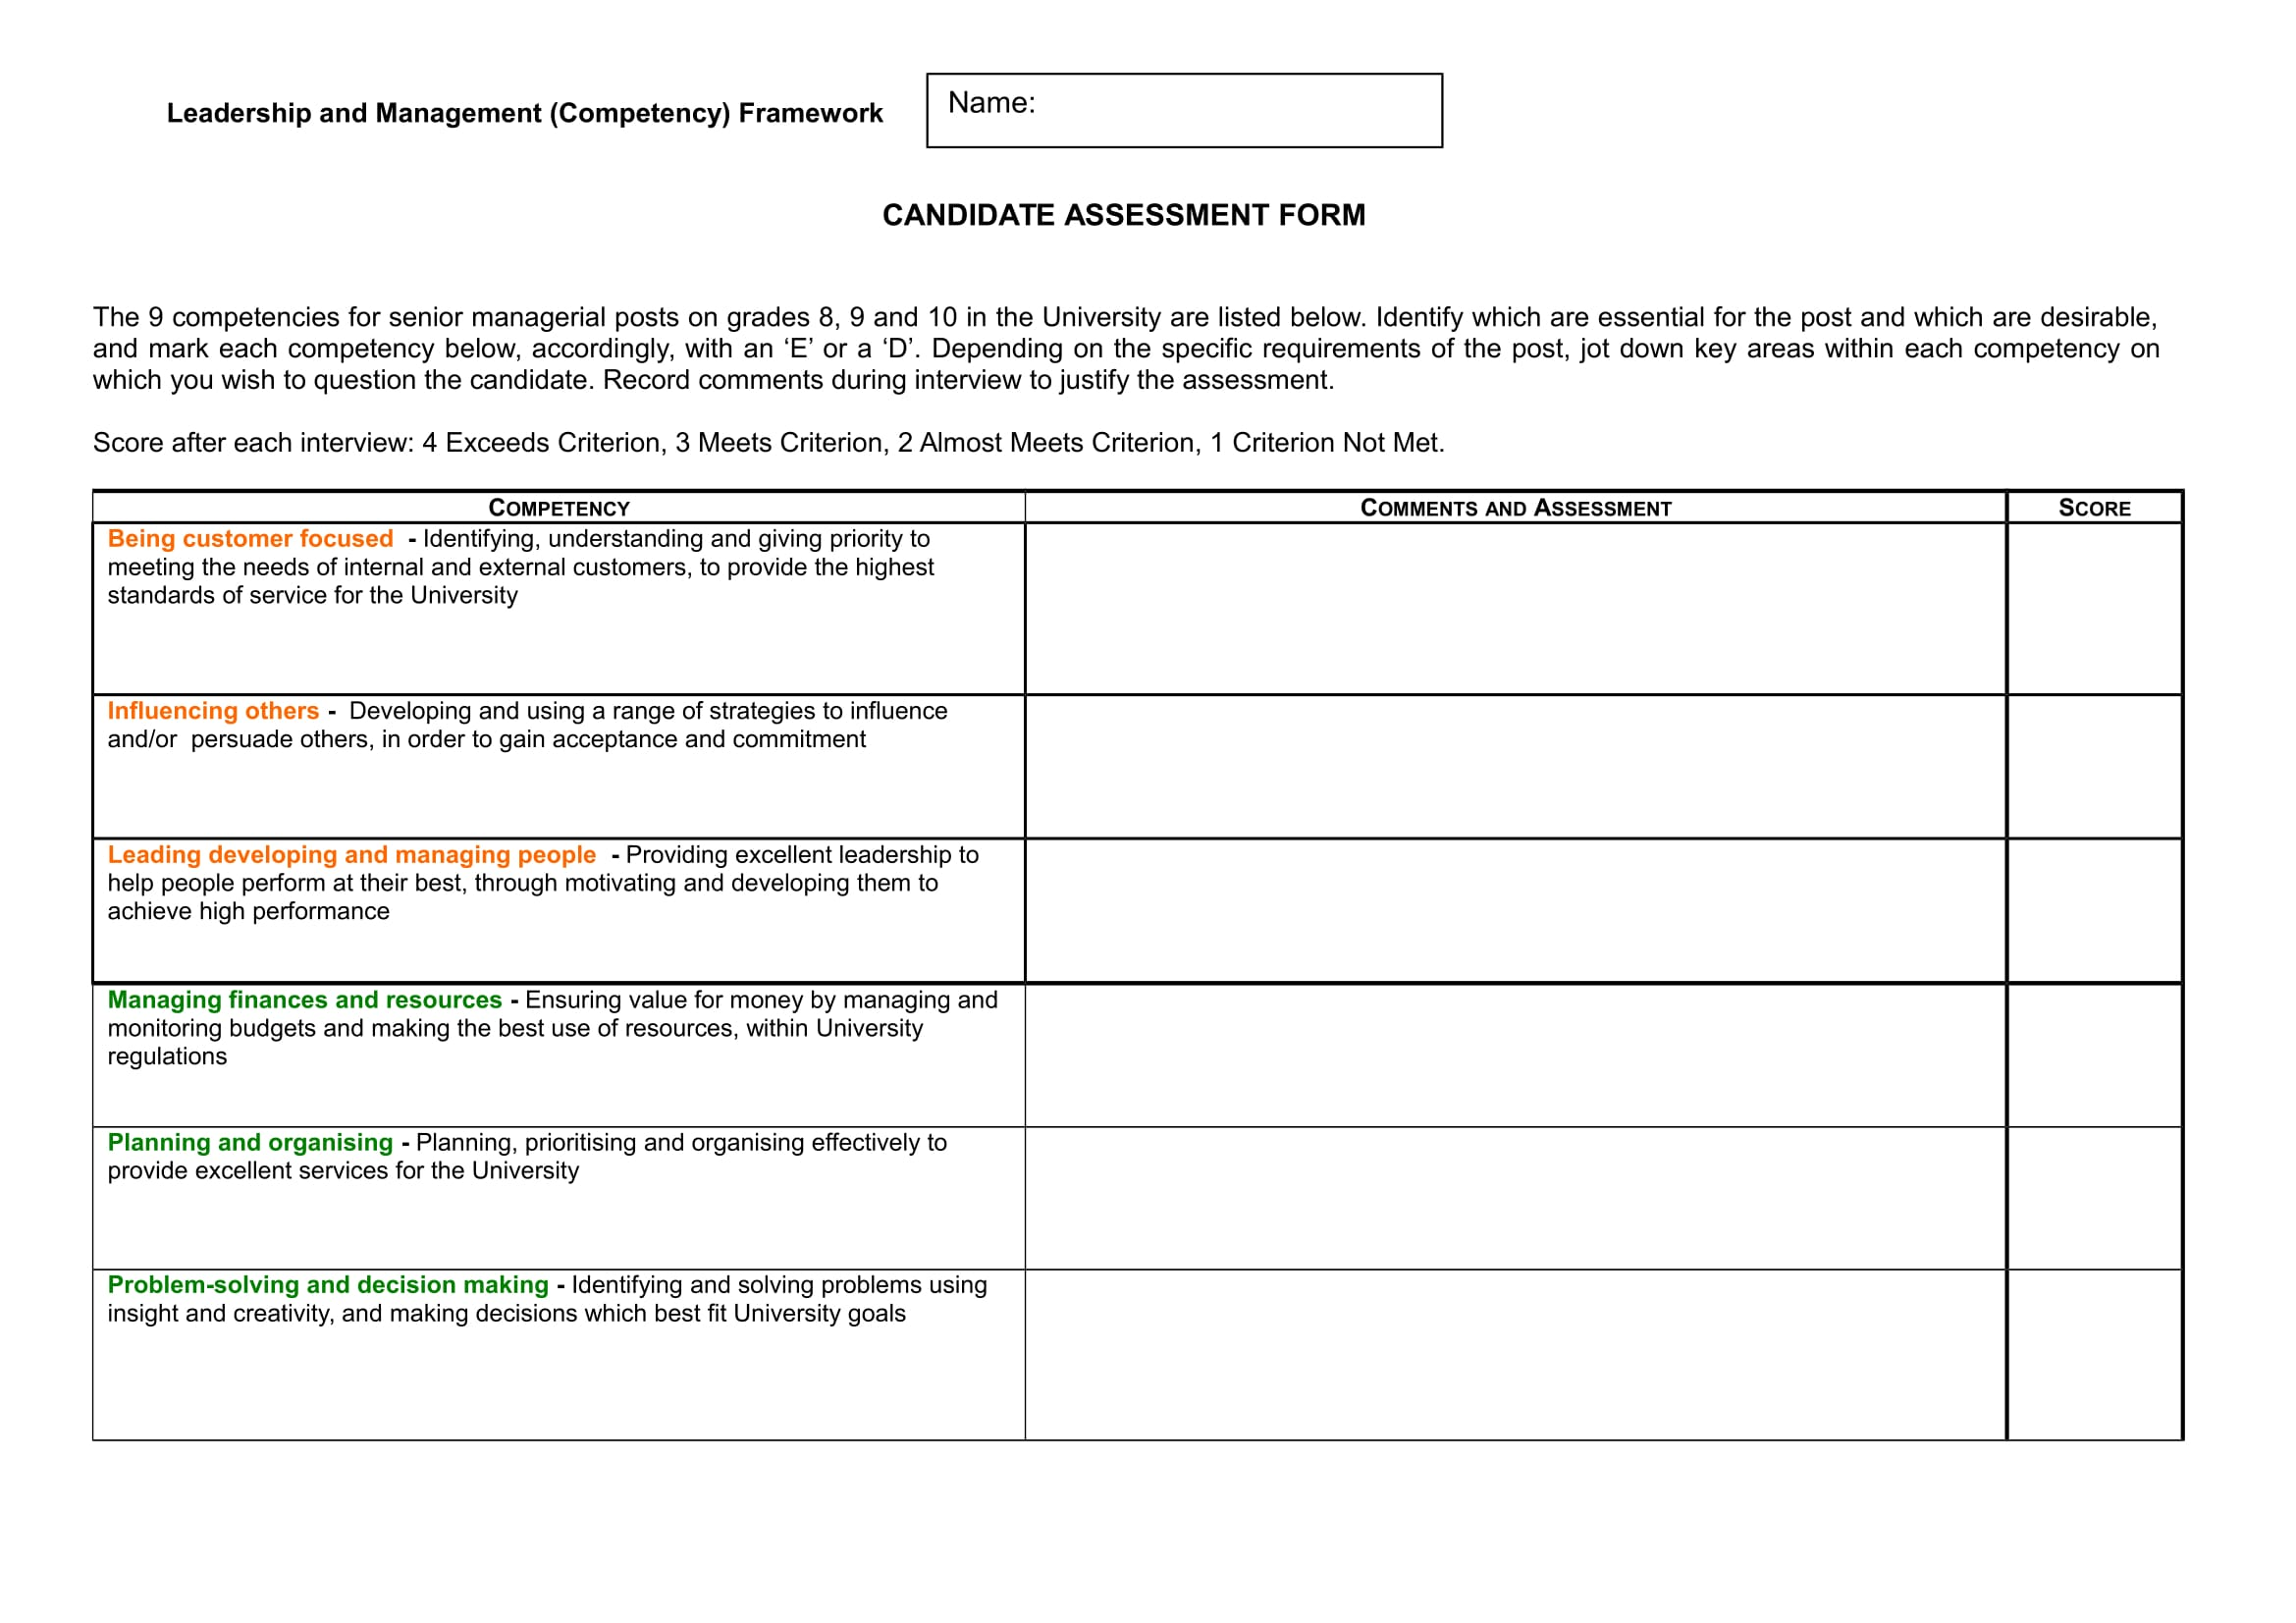 candidate assessment form example 1